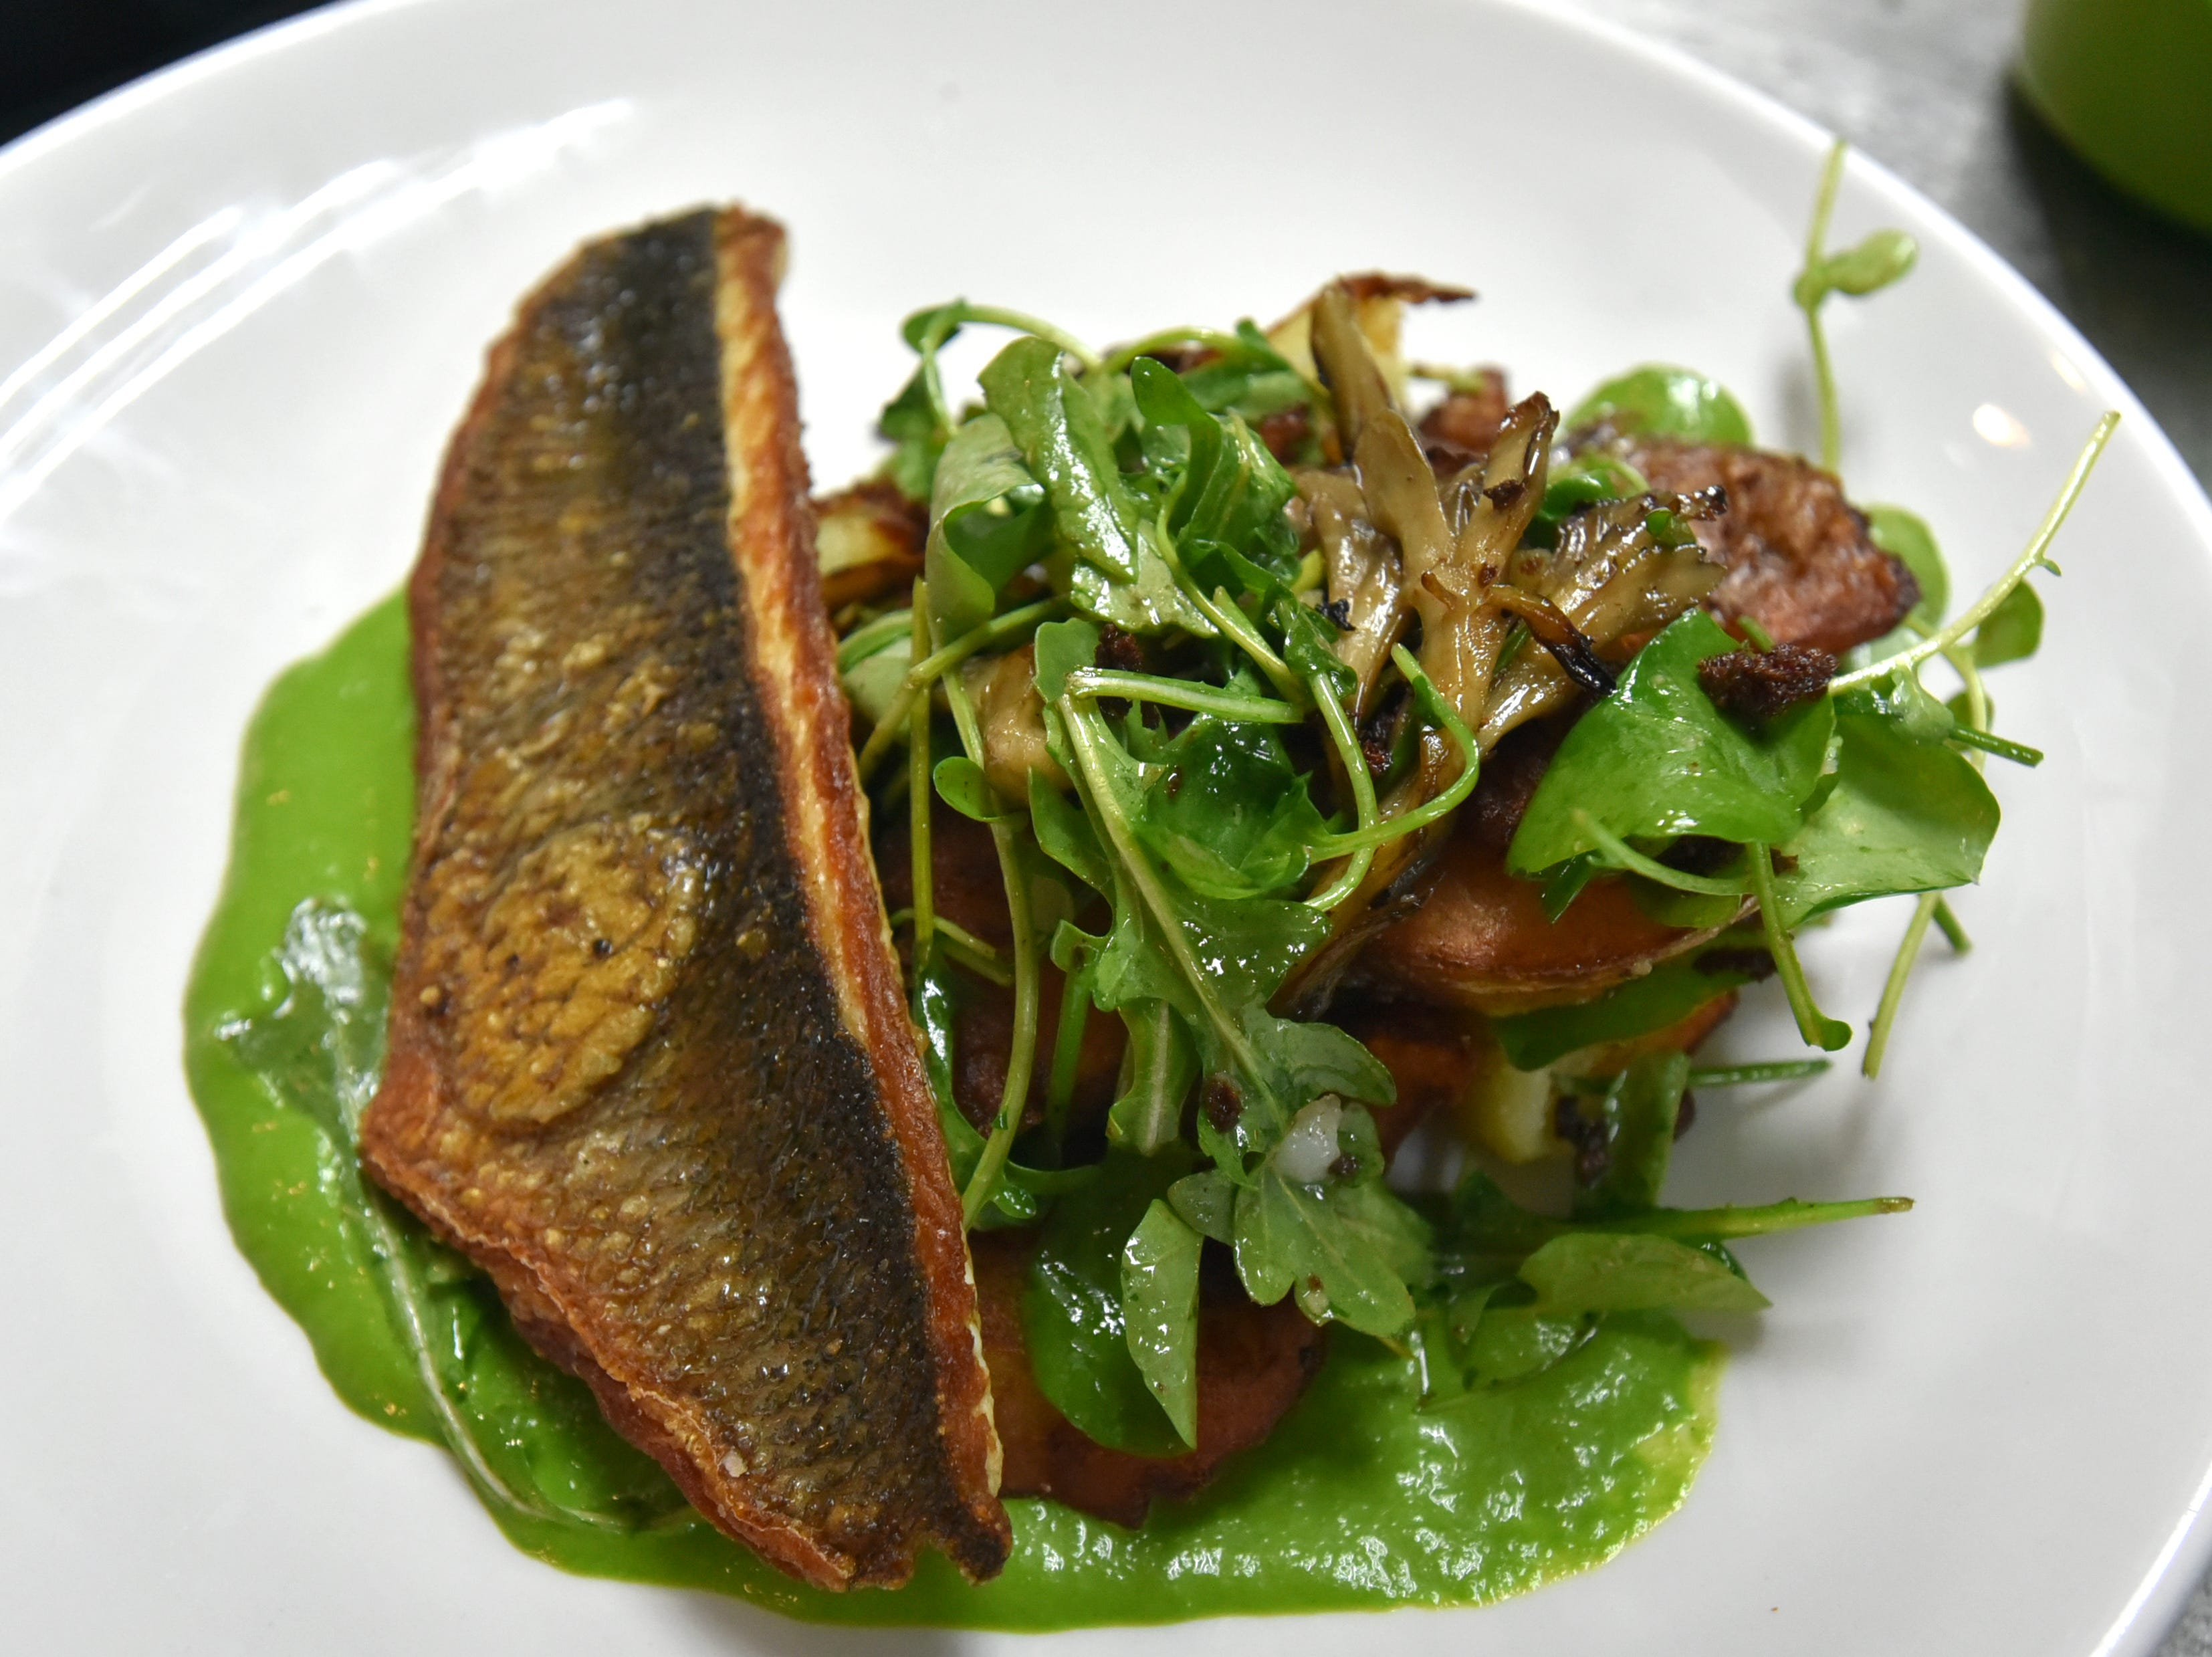 Birmingham's Social Bar and Grill's grilled branzino with miatake mushrooms, sauteed potatoes and arugula puree.